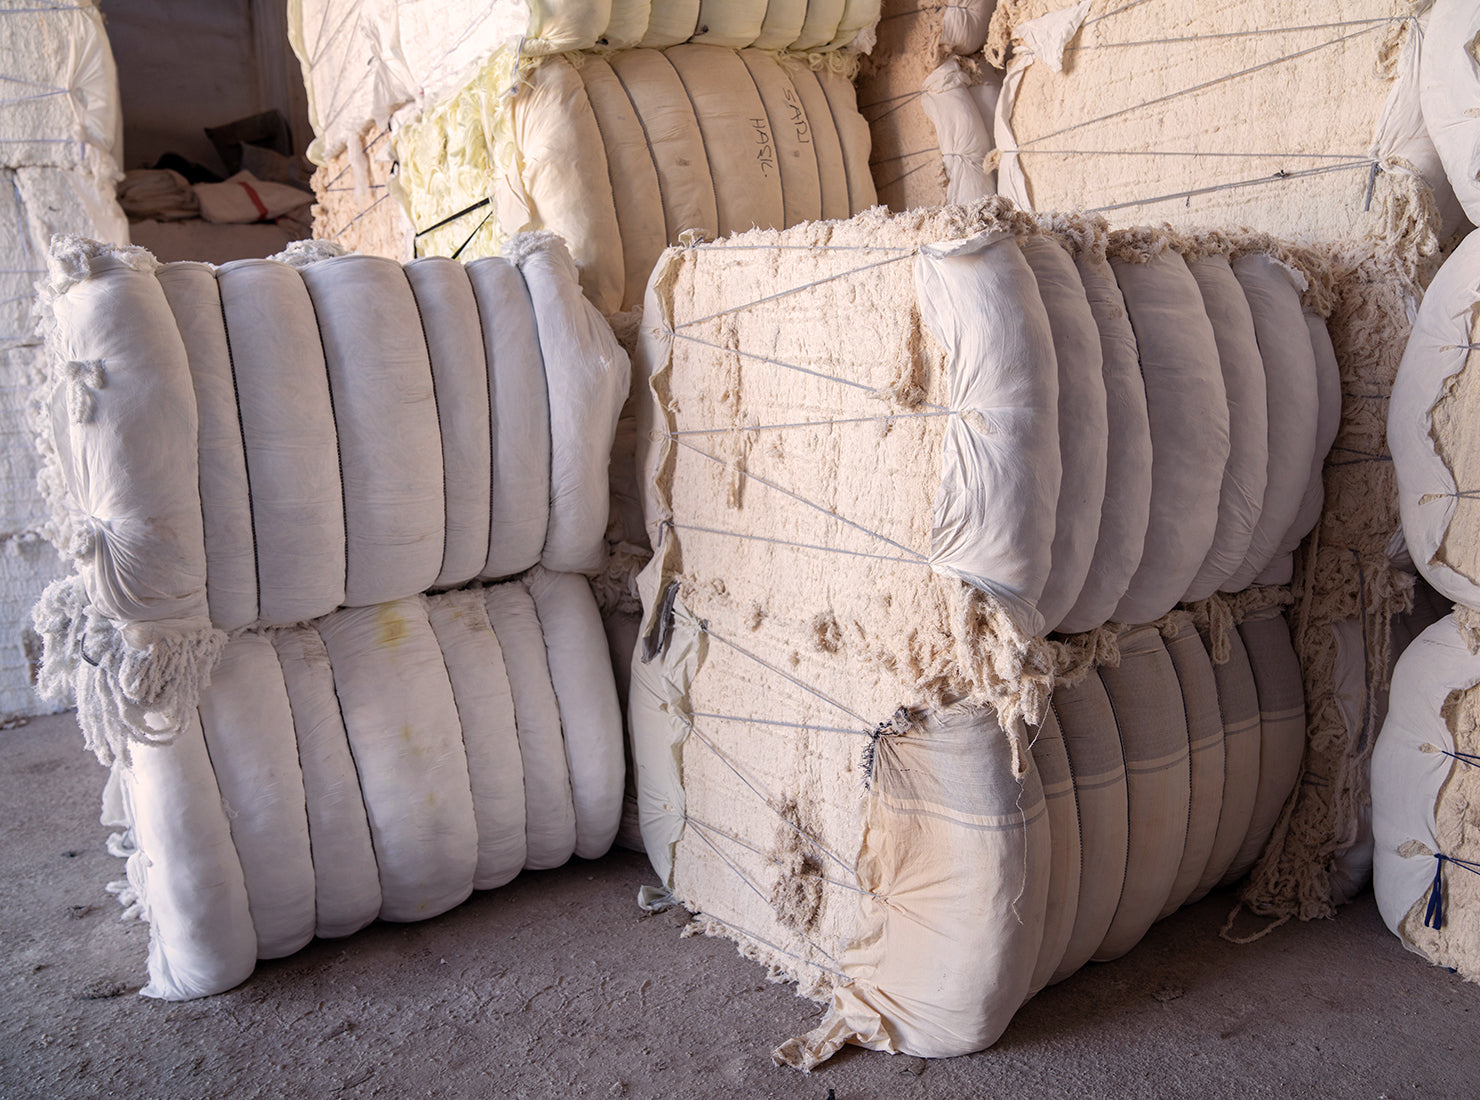 Cotton fiber bales